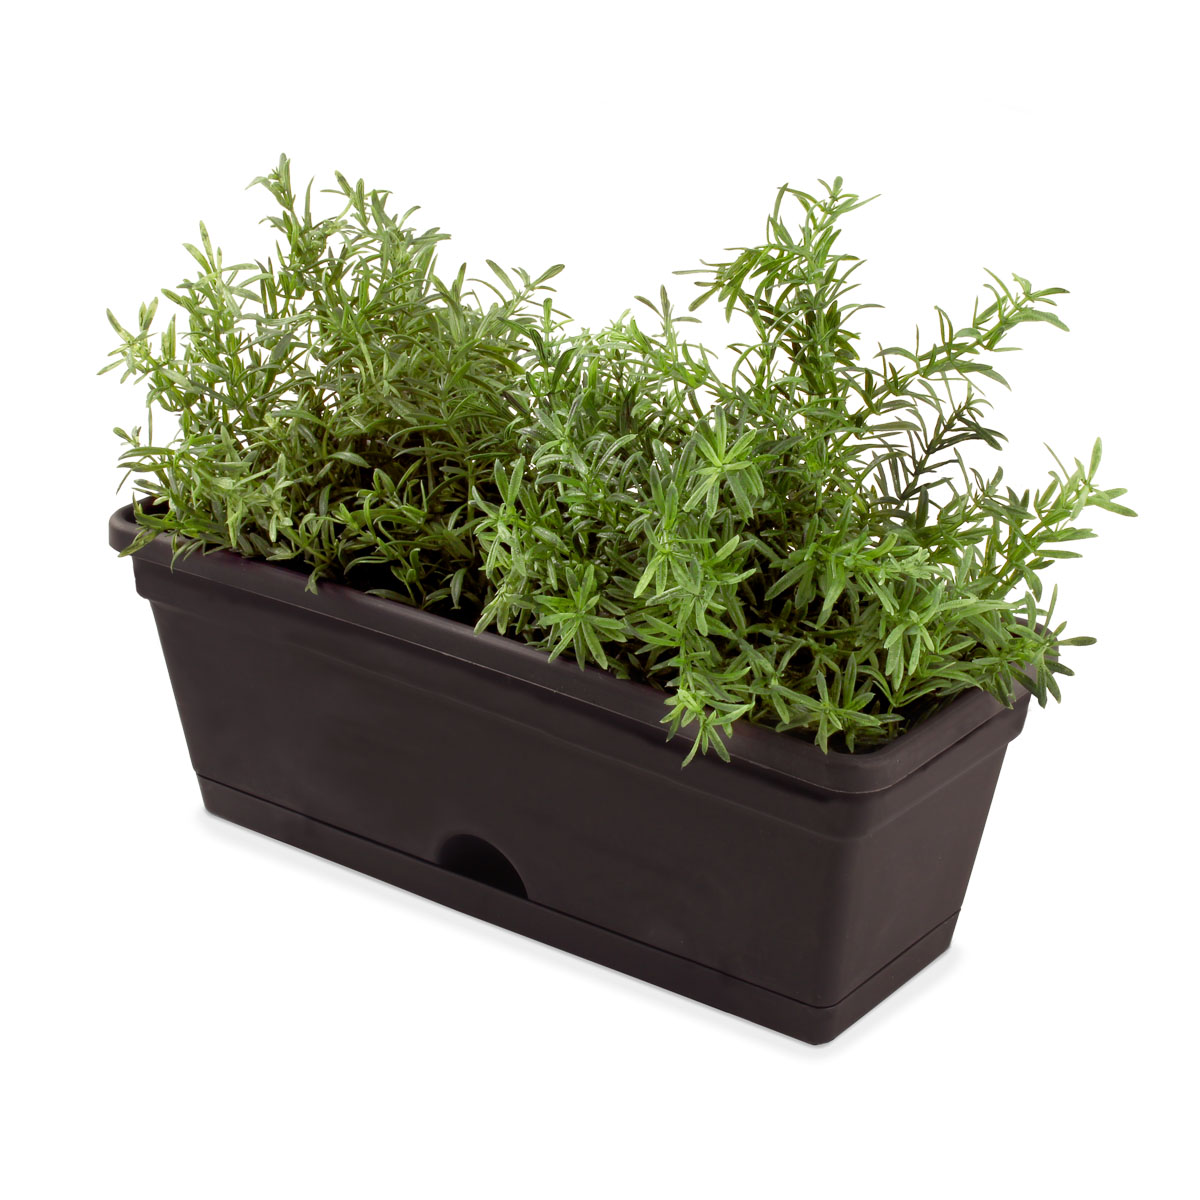 18440 Garden Up Herb Pot Charcoal with herbs